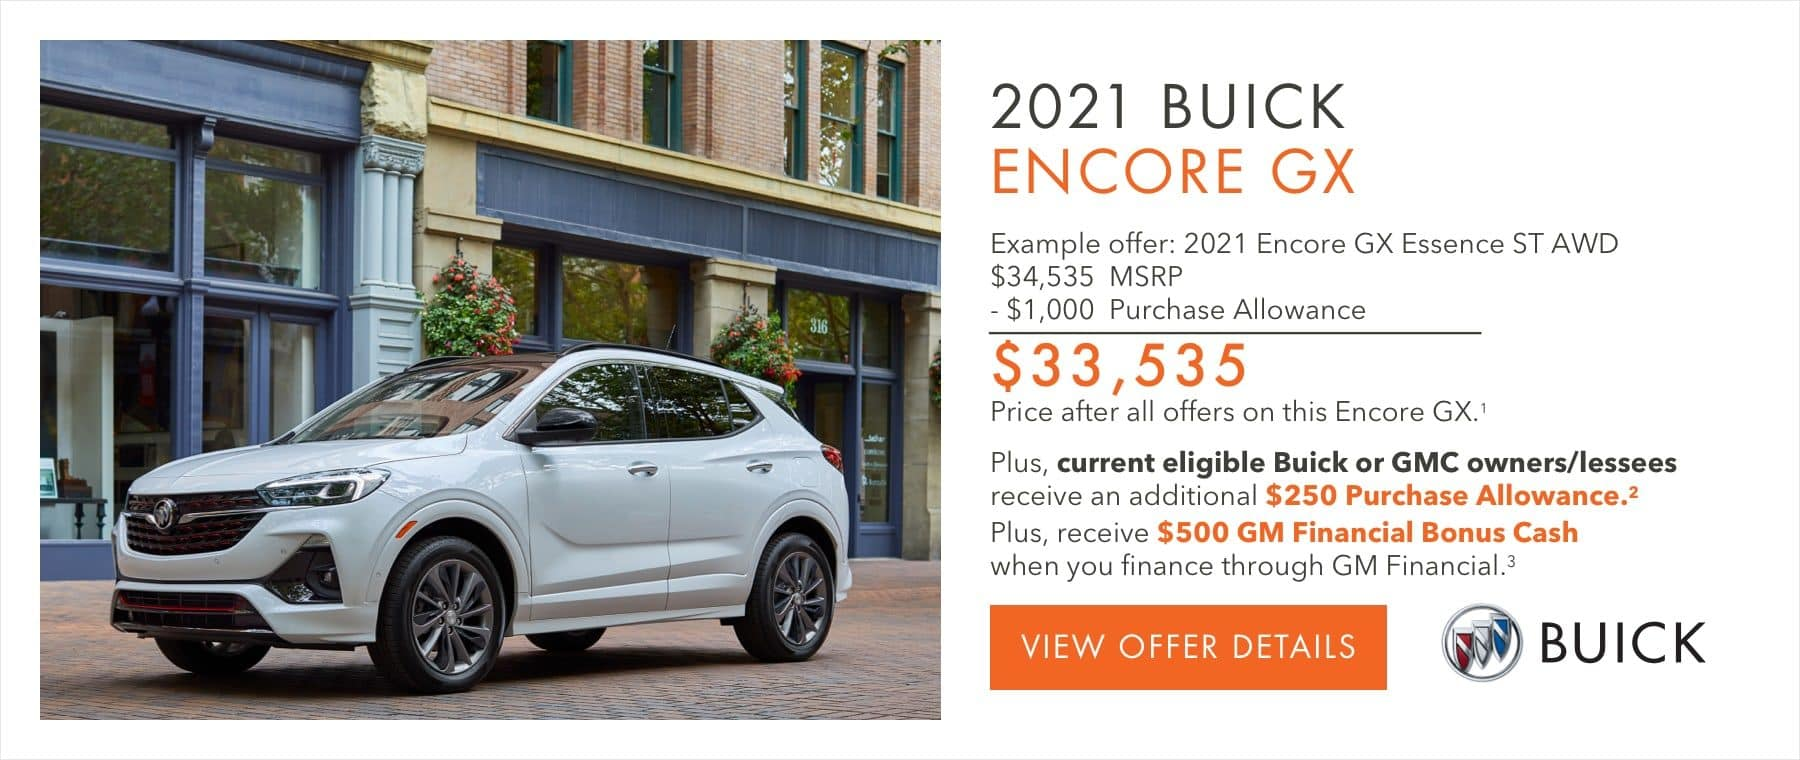 EXAMPLE OFFER: 2021 ENCORE GX ESSENCE ST AWD $34,535 MSRP -$1,000 Purchase Allowance $33,535 Price after all offers on this Encore GX.2 Plus, current eligible Buick or GMC owners/lessees receive an additional $250 Purchase Allowance.2 Plus, receive $500 GM Financial Bonus Cash when you finance through GM Financial.3